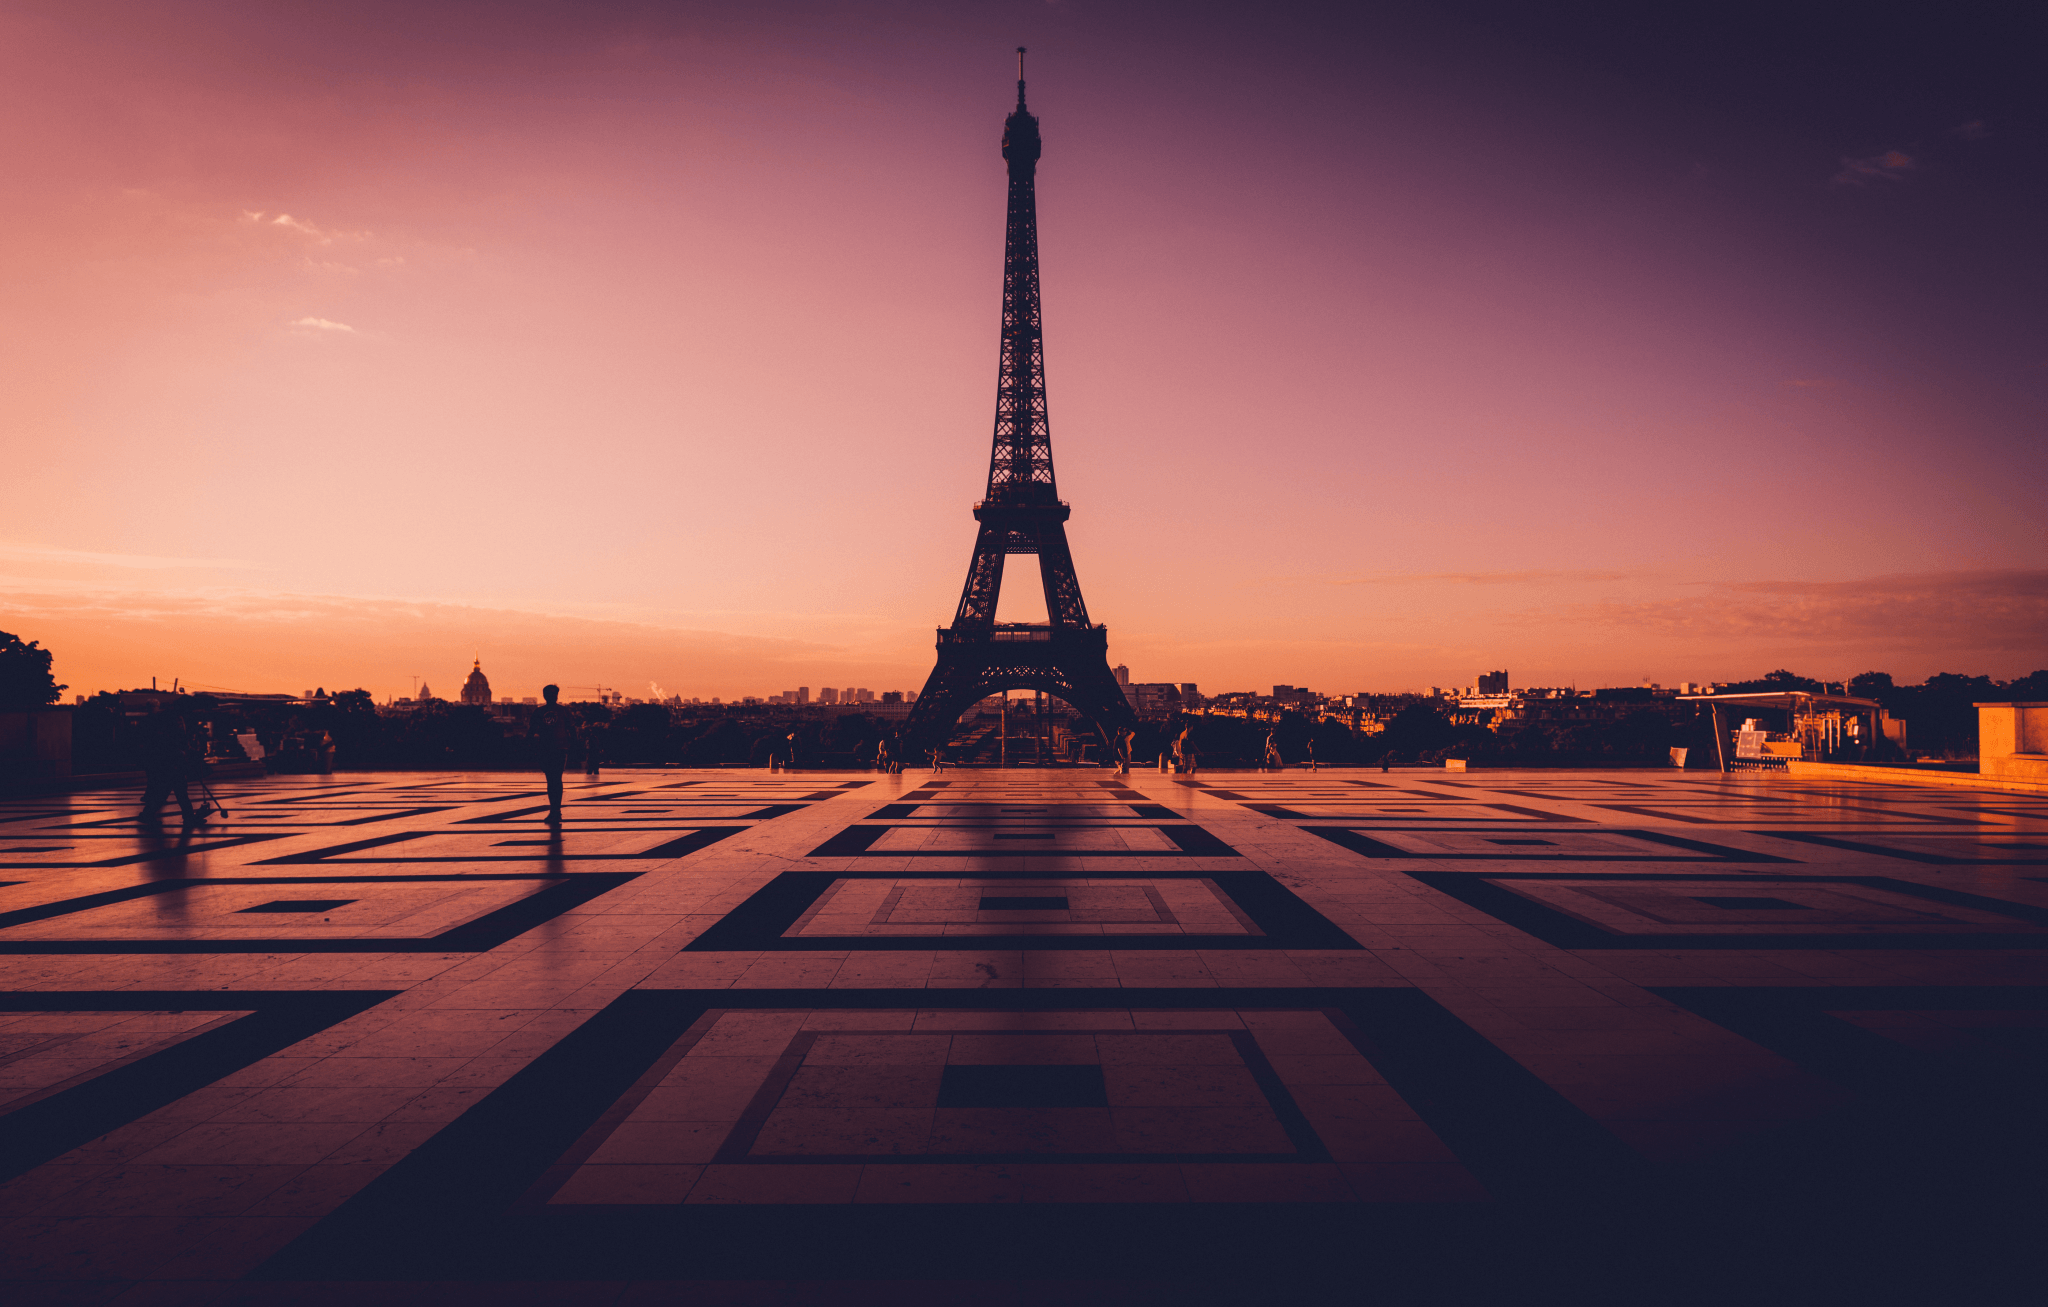 The beacon of hope that is the Eiffel Tower at sunrise